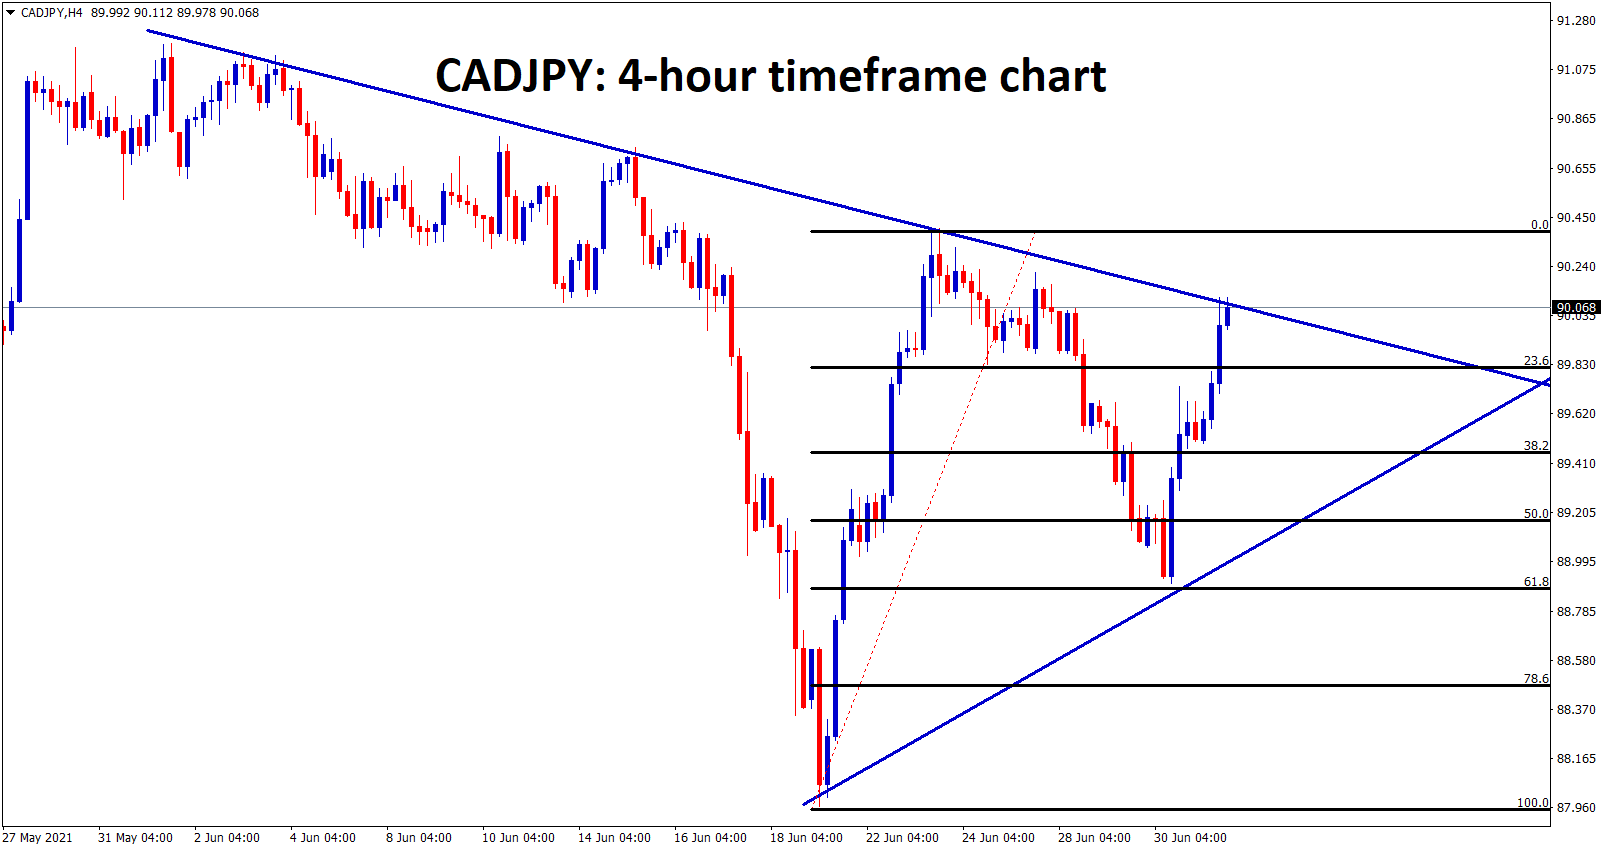 CADJPY bounces back to lower high after 61.8 retracement